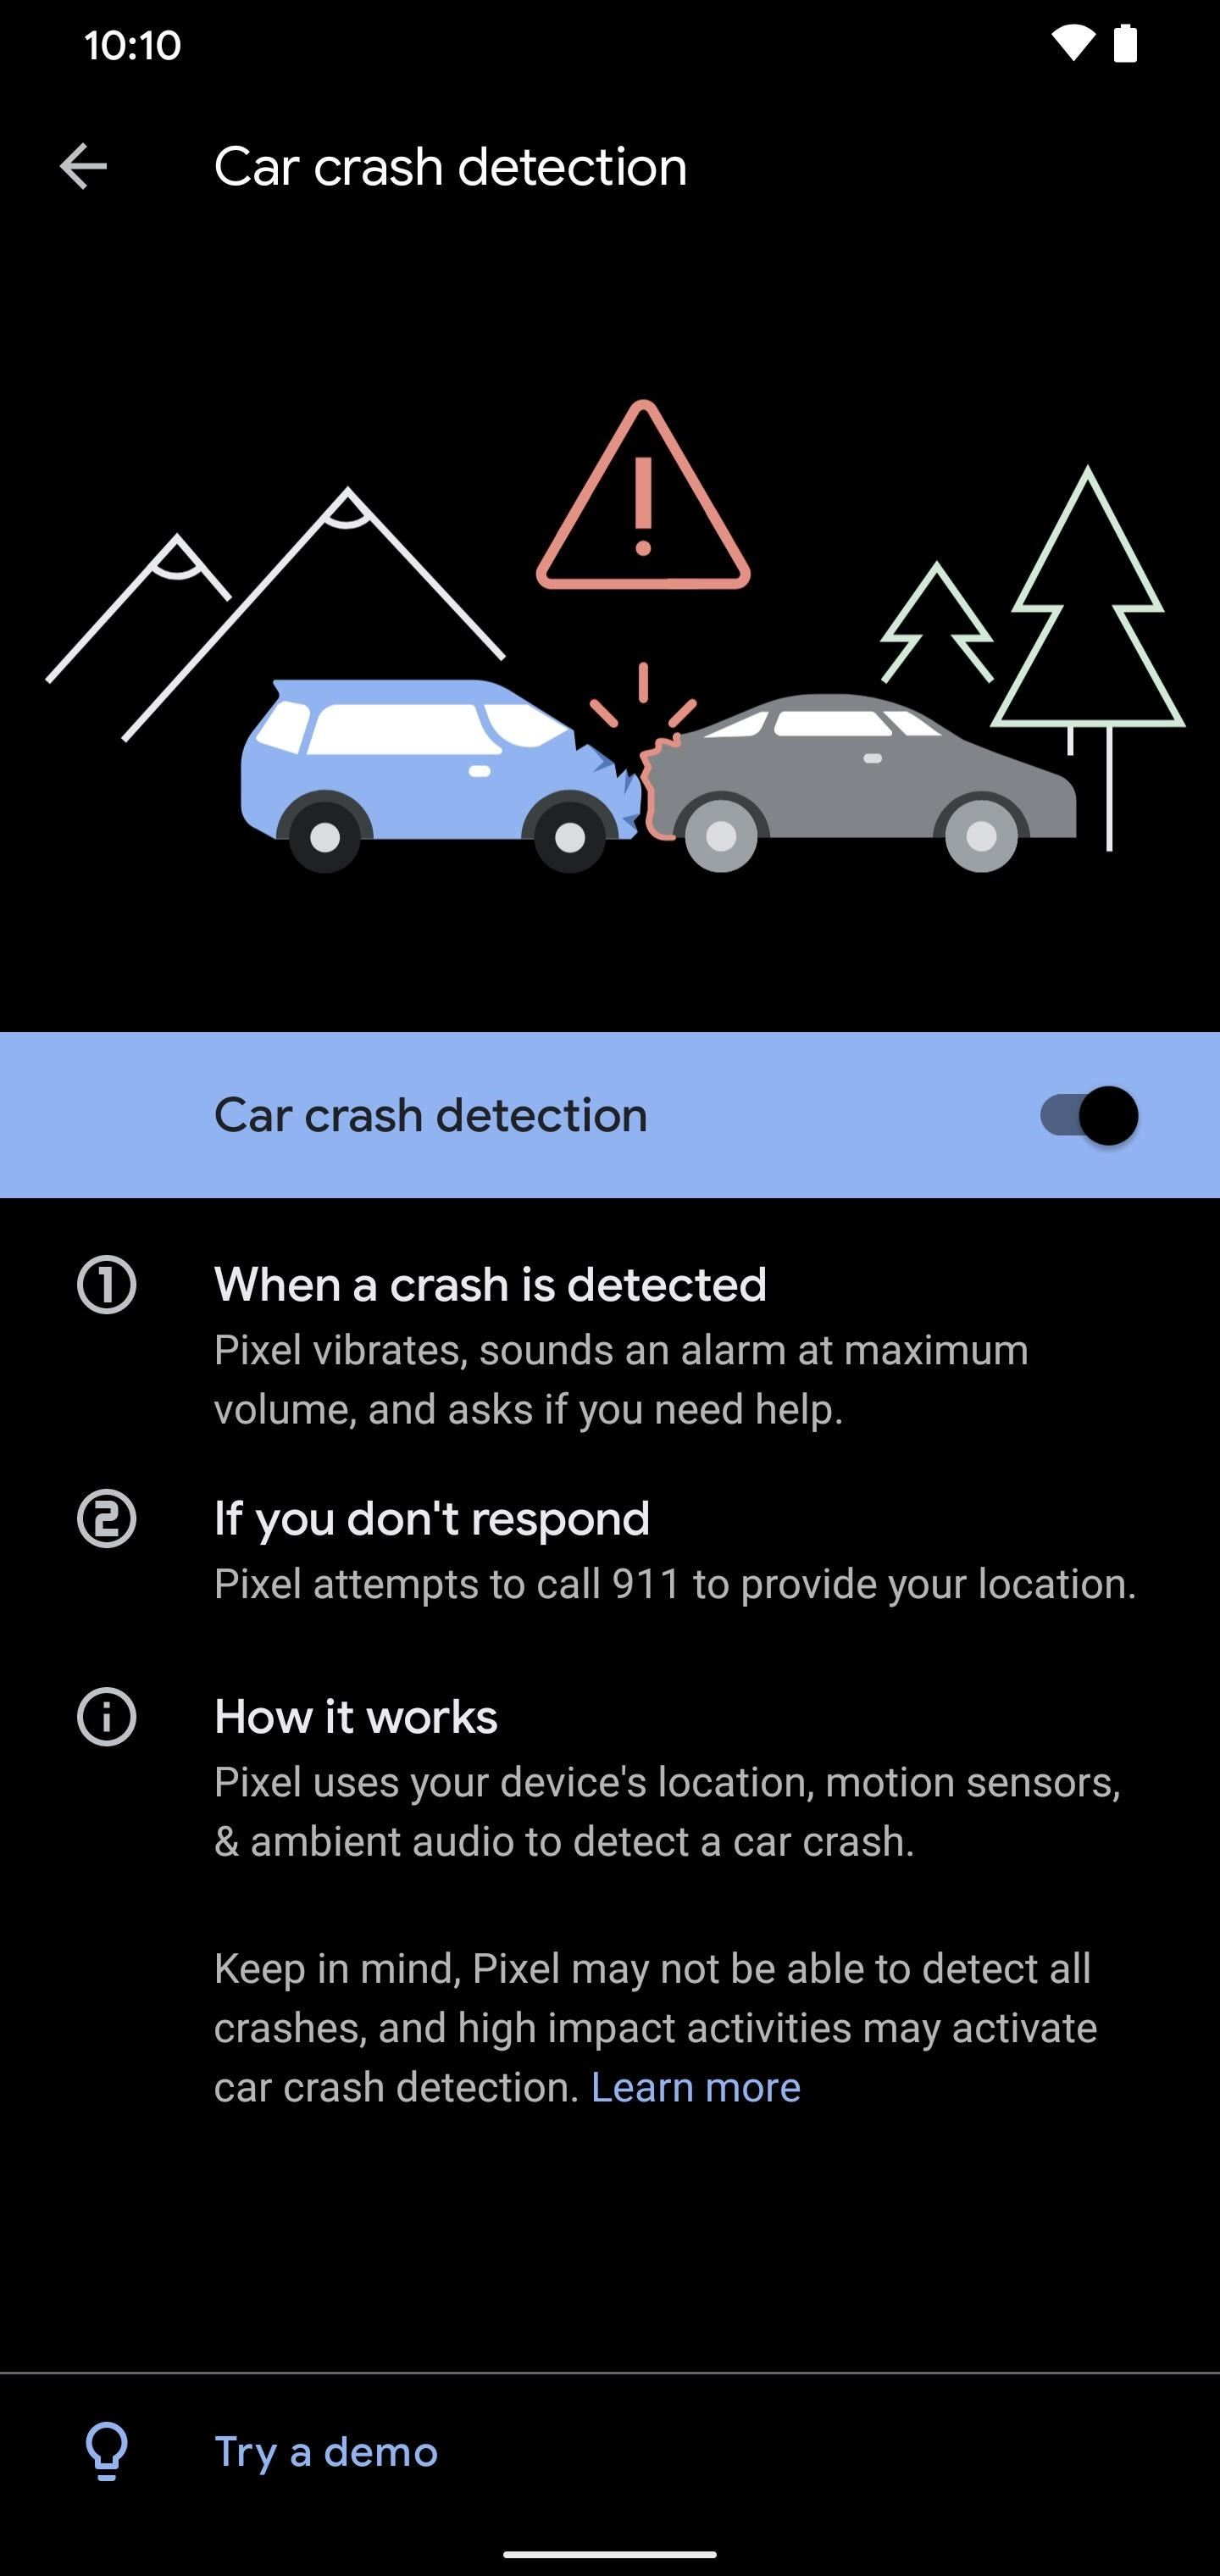 How to Set Up Car Crash Detection on Your Pixel to Contact Emergency Services When You Can't